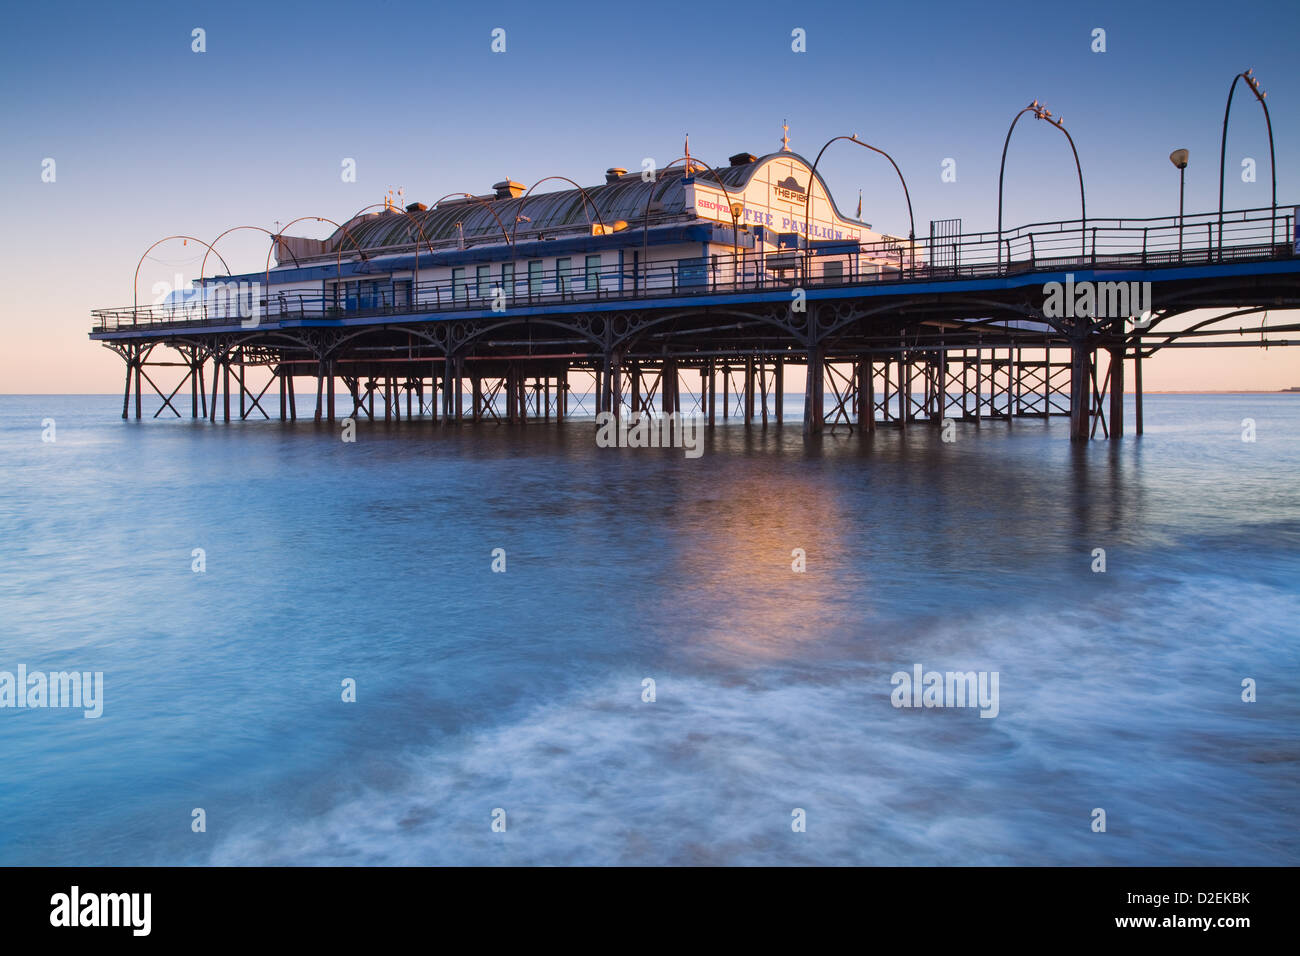 Cleethorpes Pier, North East Lincolnshire, England, UK. 9th January 2013. Evening winter light on the pier at high - Stock Image